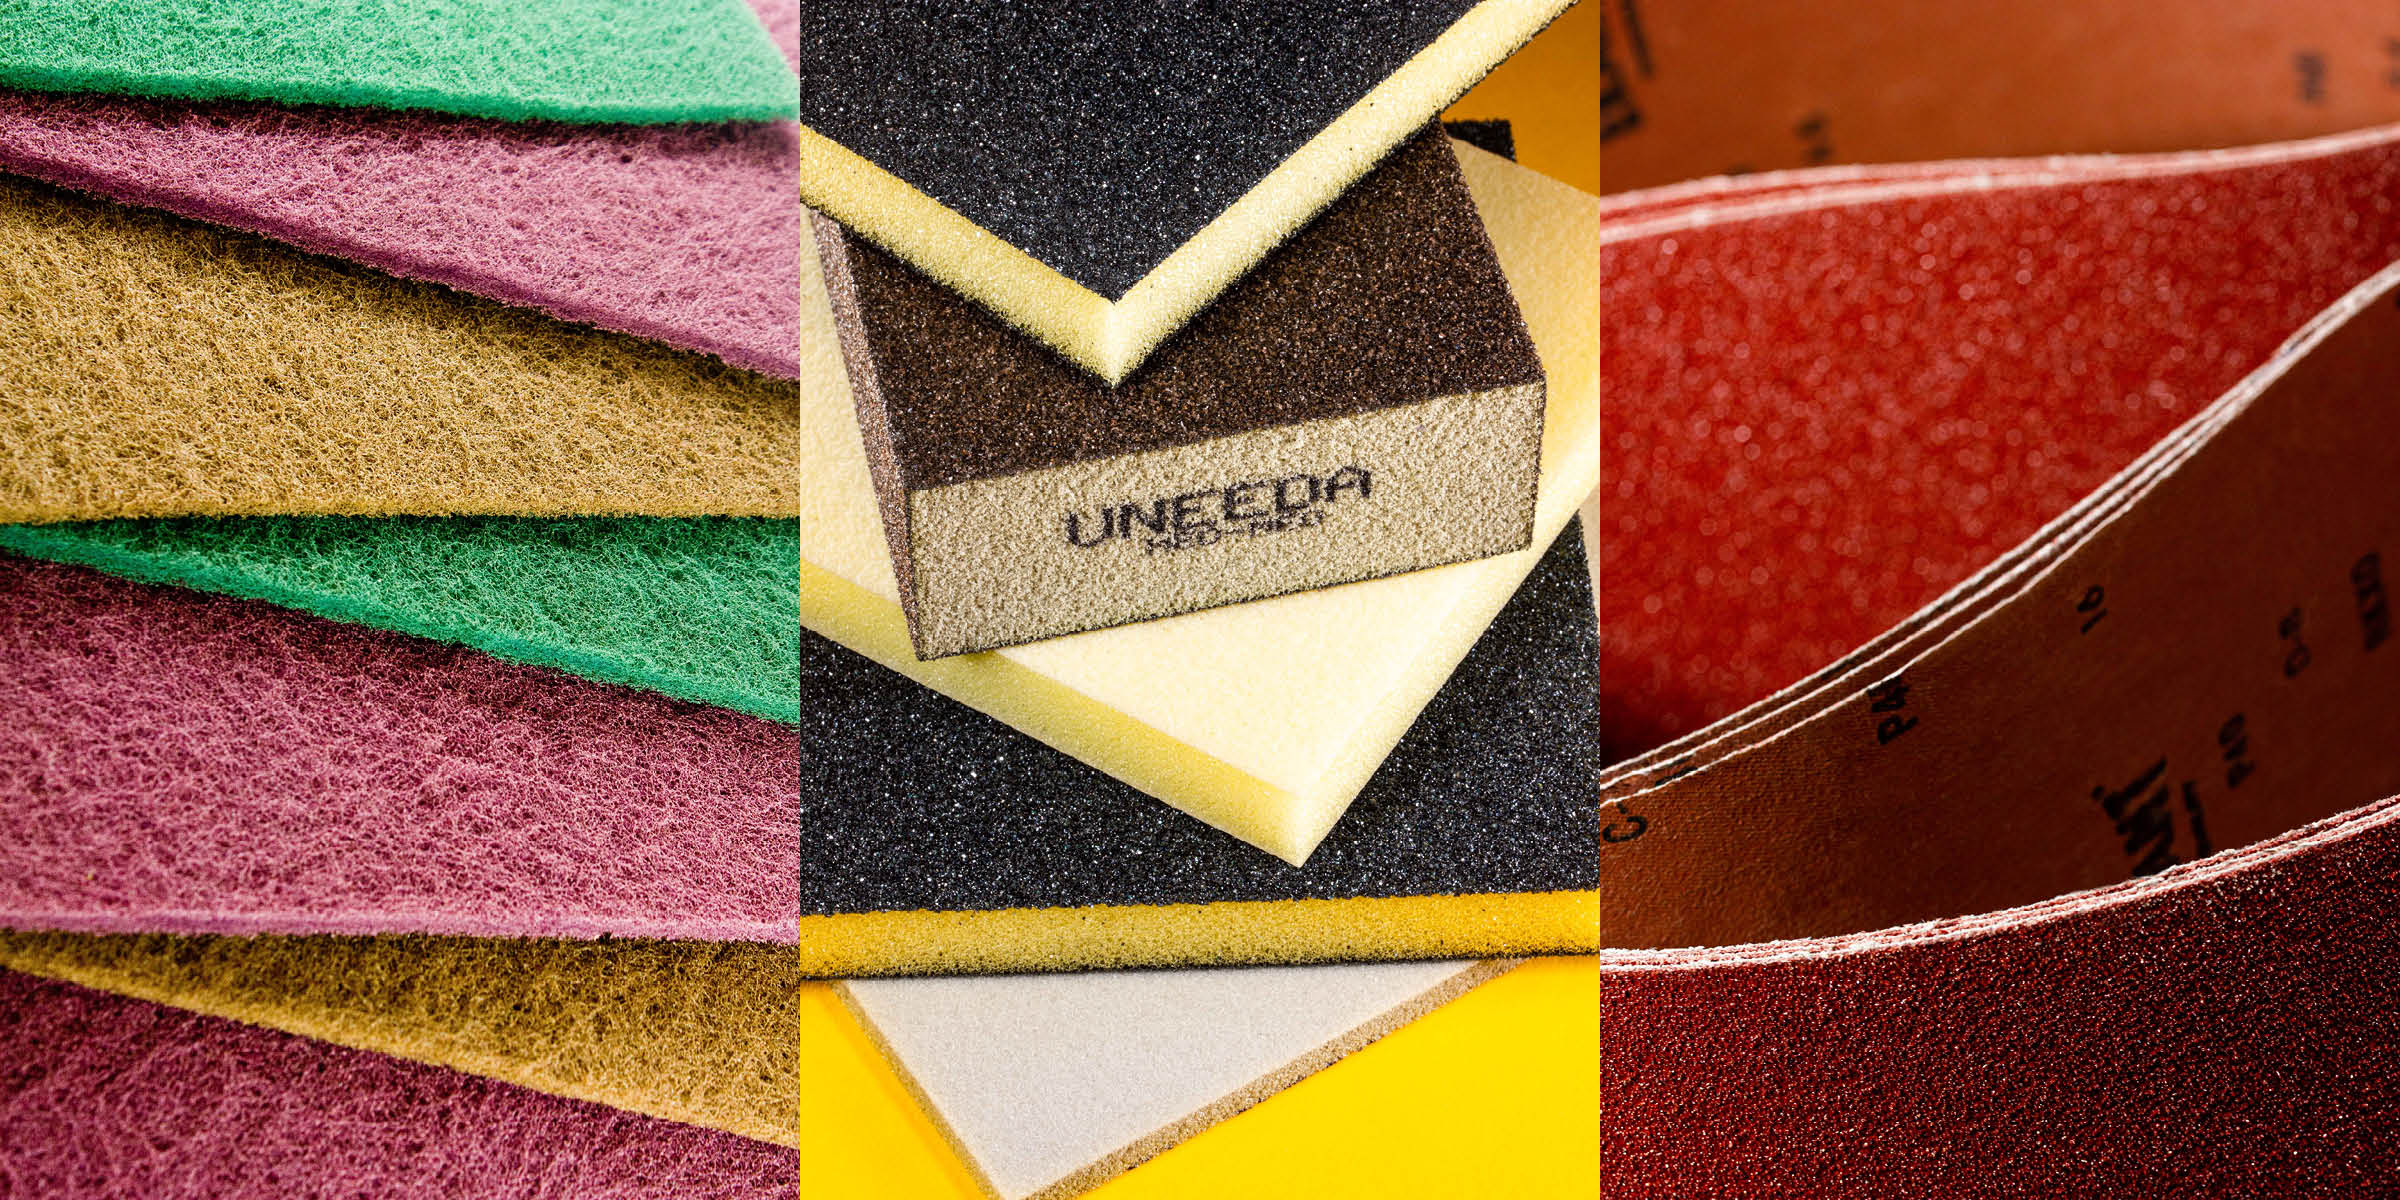 Abrasives Triptych - Product Photography by Hudson Valley NY Photographer Caylena Cahill